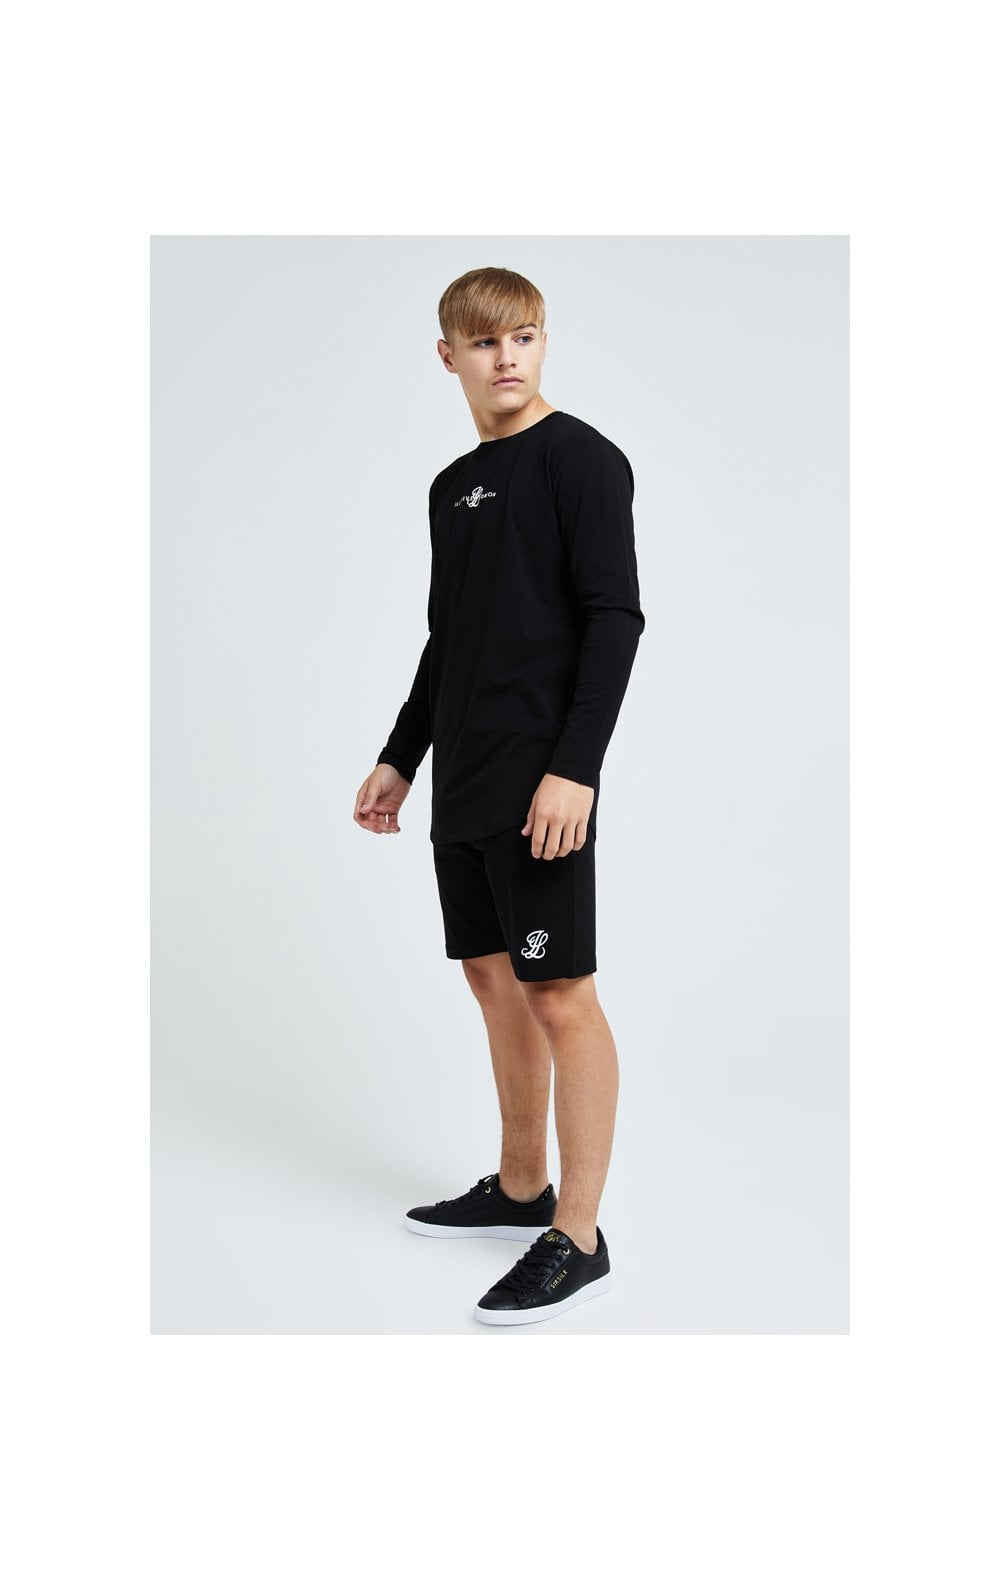 Illusive London Dual L/S Tee - Black (3)